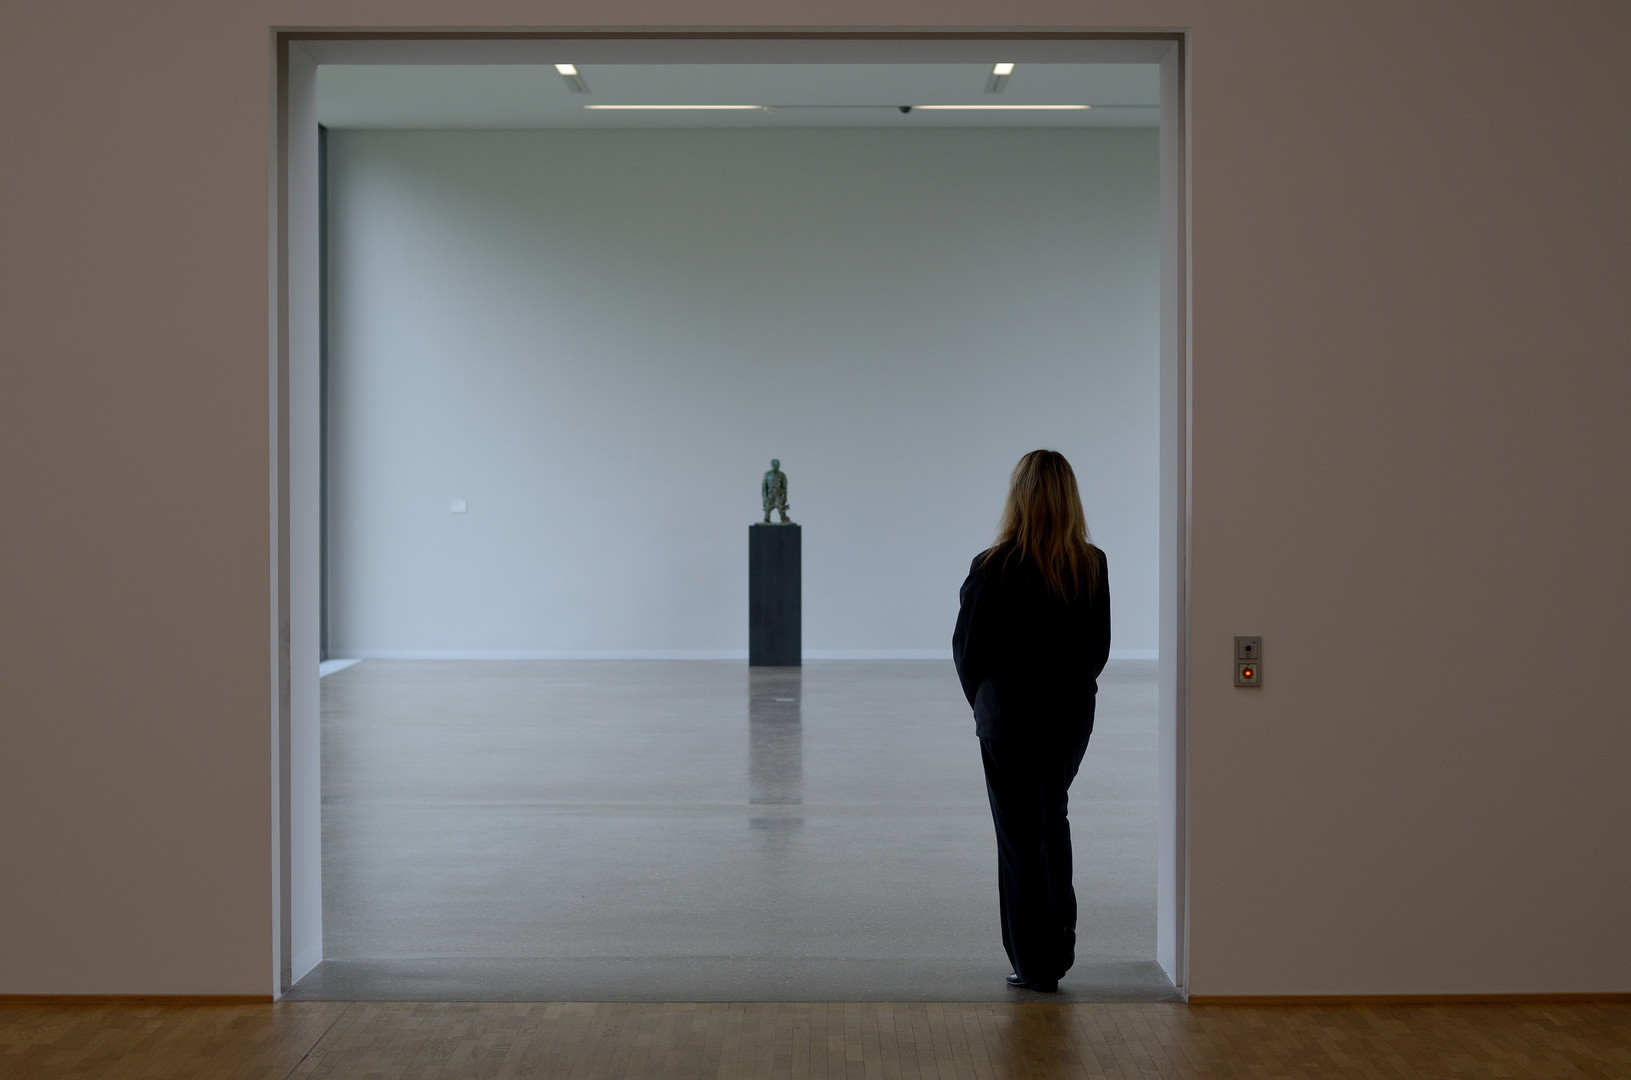 Urban loneliness  -  In the museum